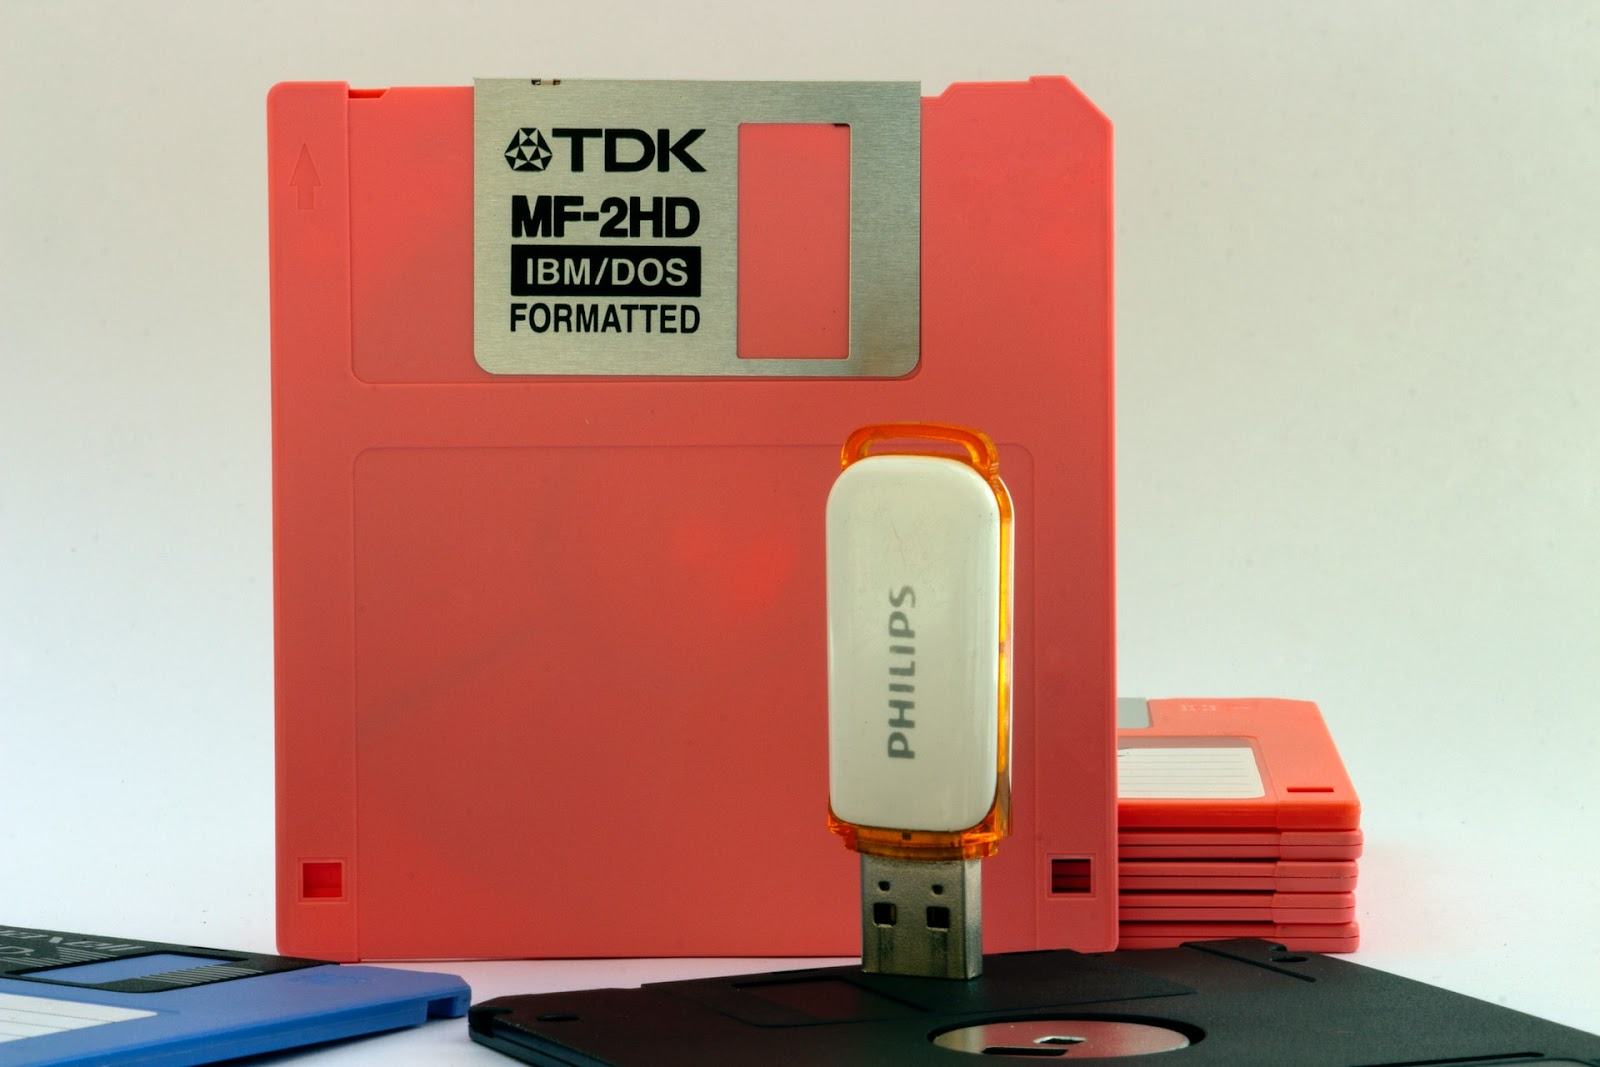 floppy disks are outdated technology